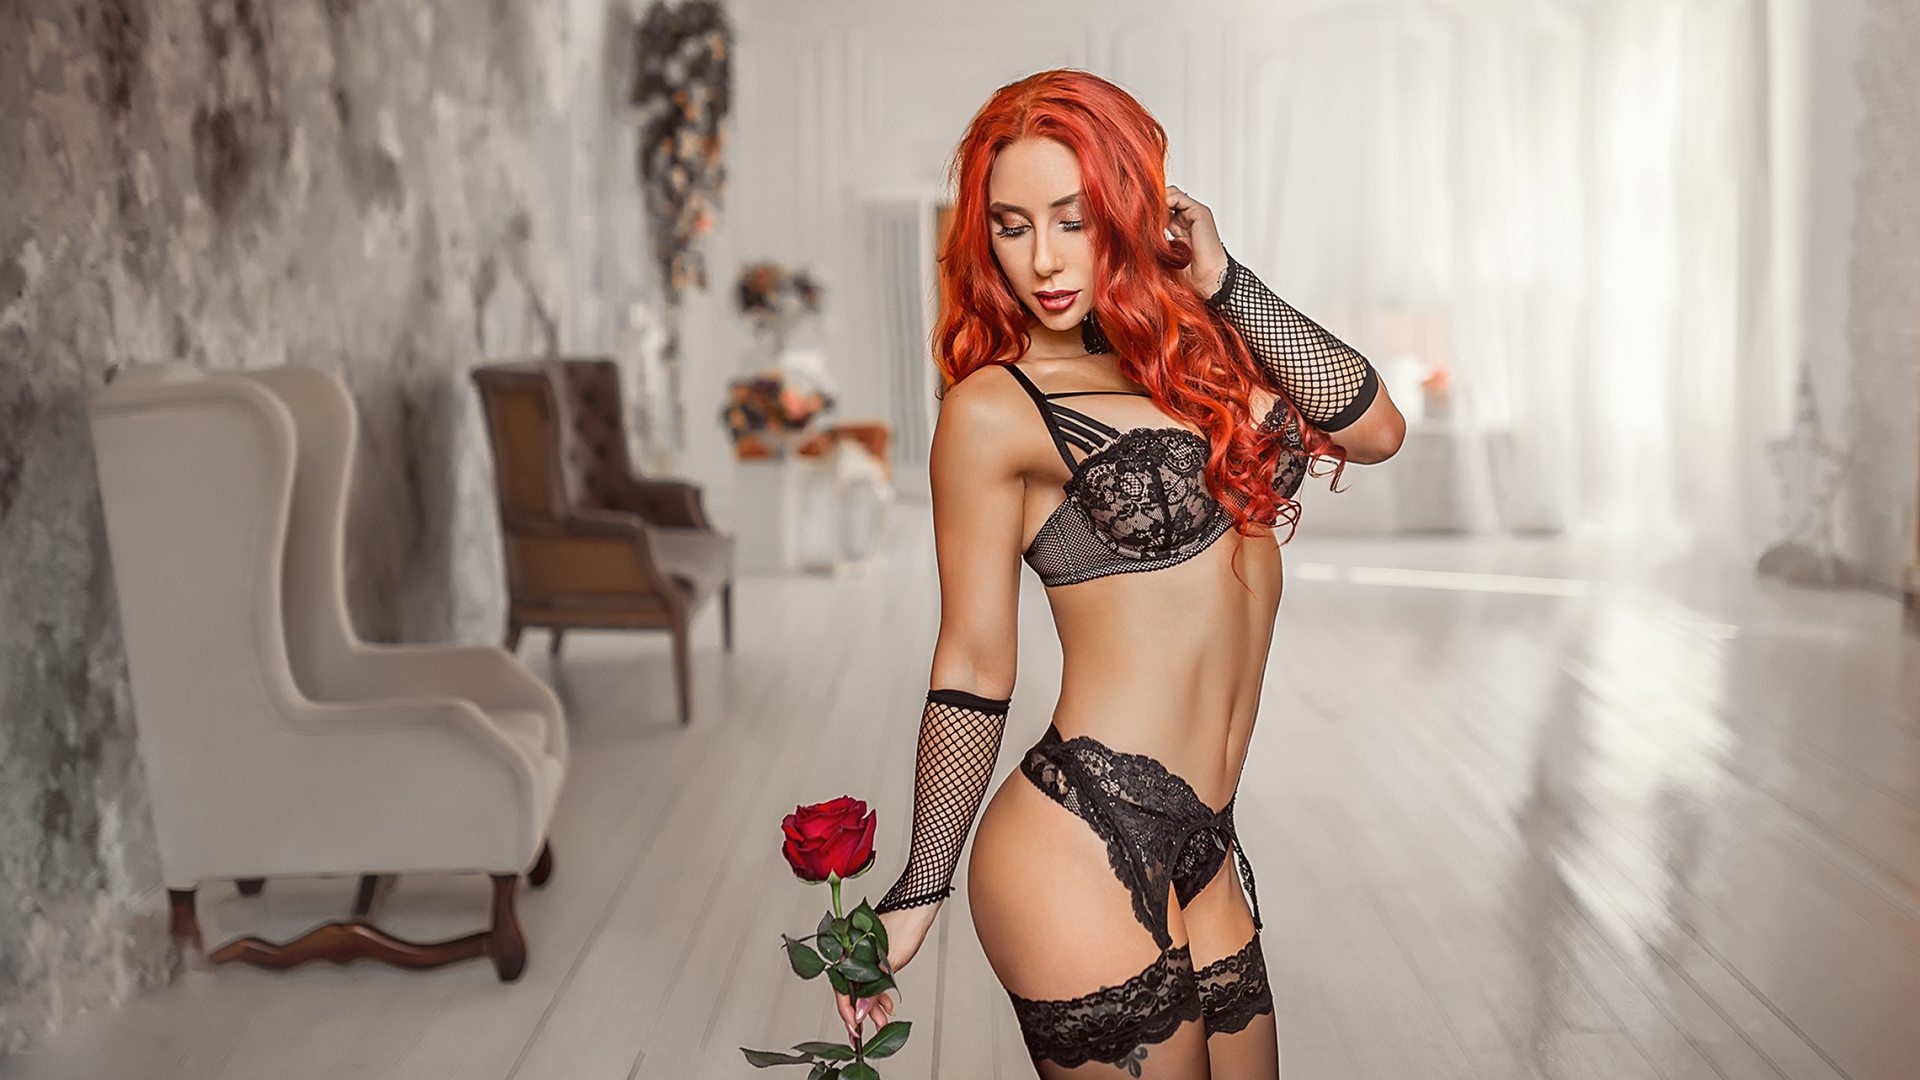 People 1920x1080 bra black stockings Eva Rudneva black bras redhead closed eyes stockings rose garter belt fake eyelashes black panties black gloves black lingerie lingerie